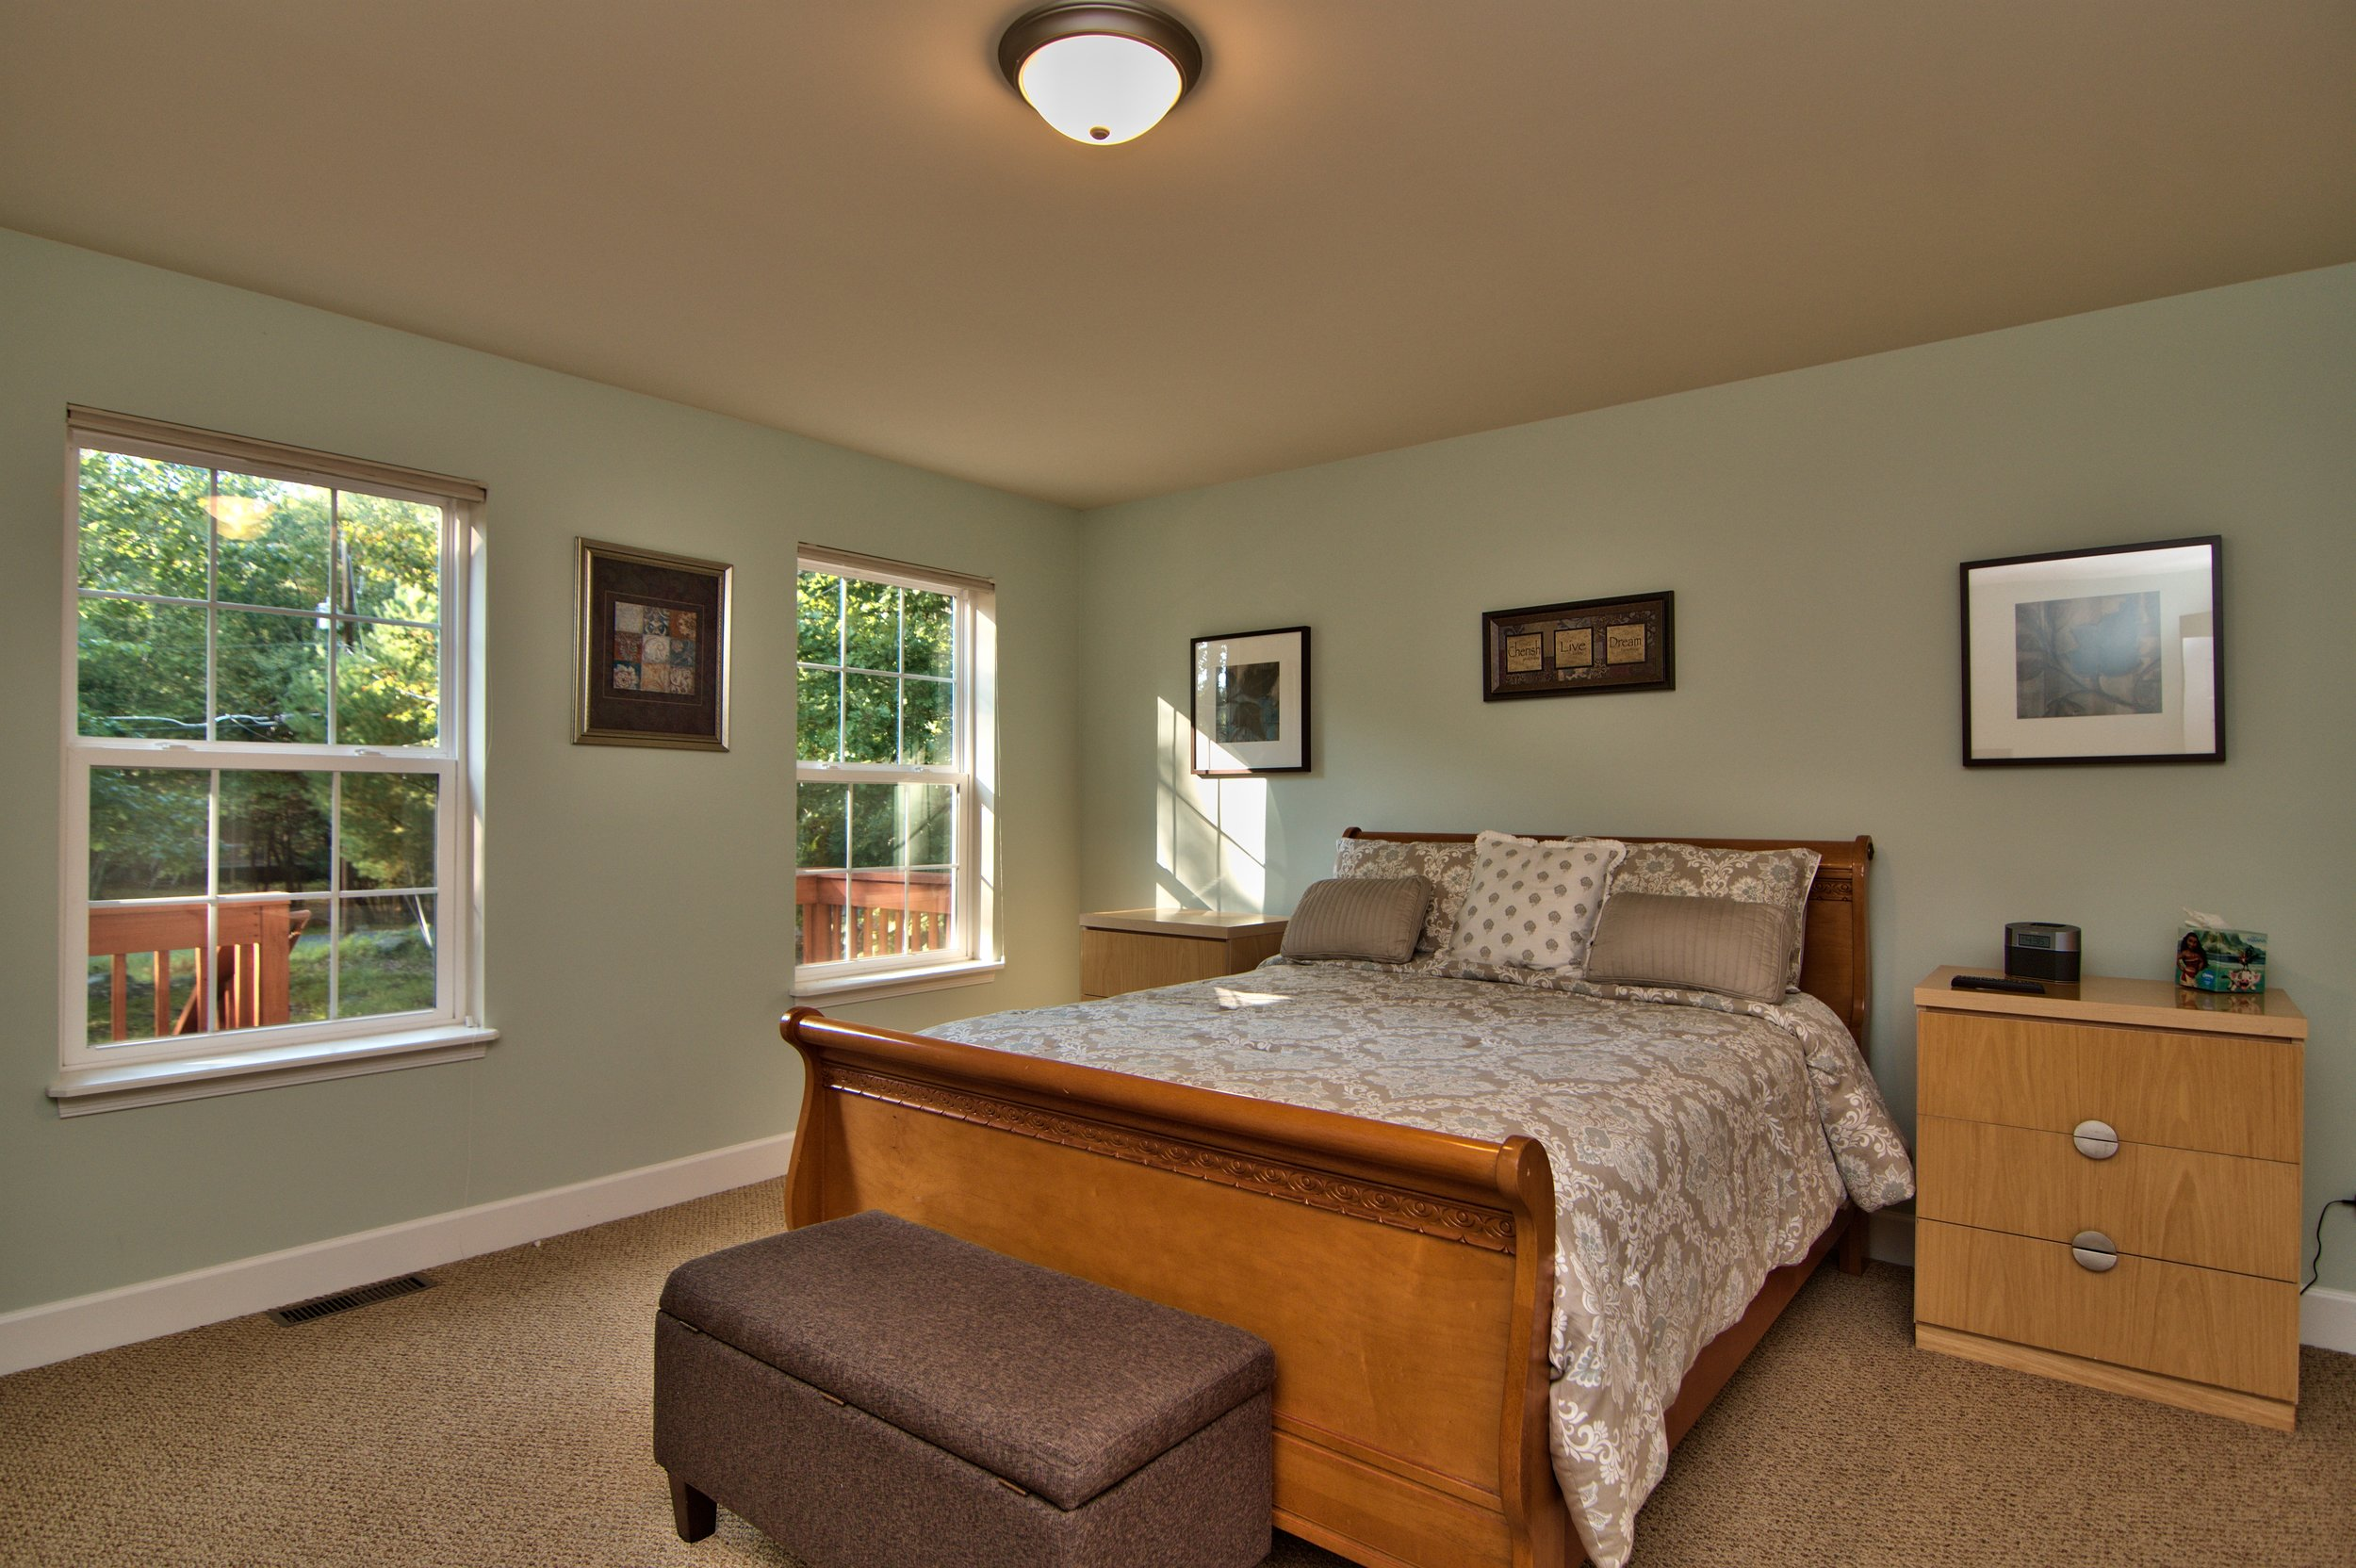 Master Bedroom View 1.jpg